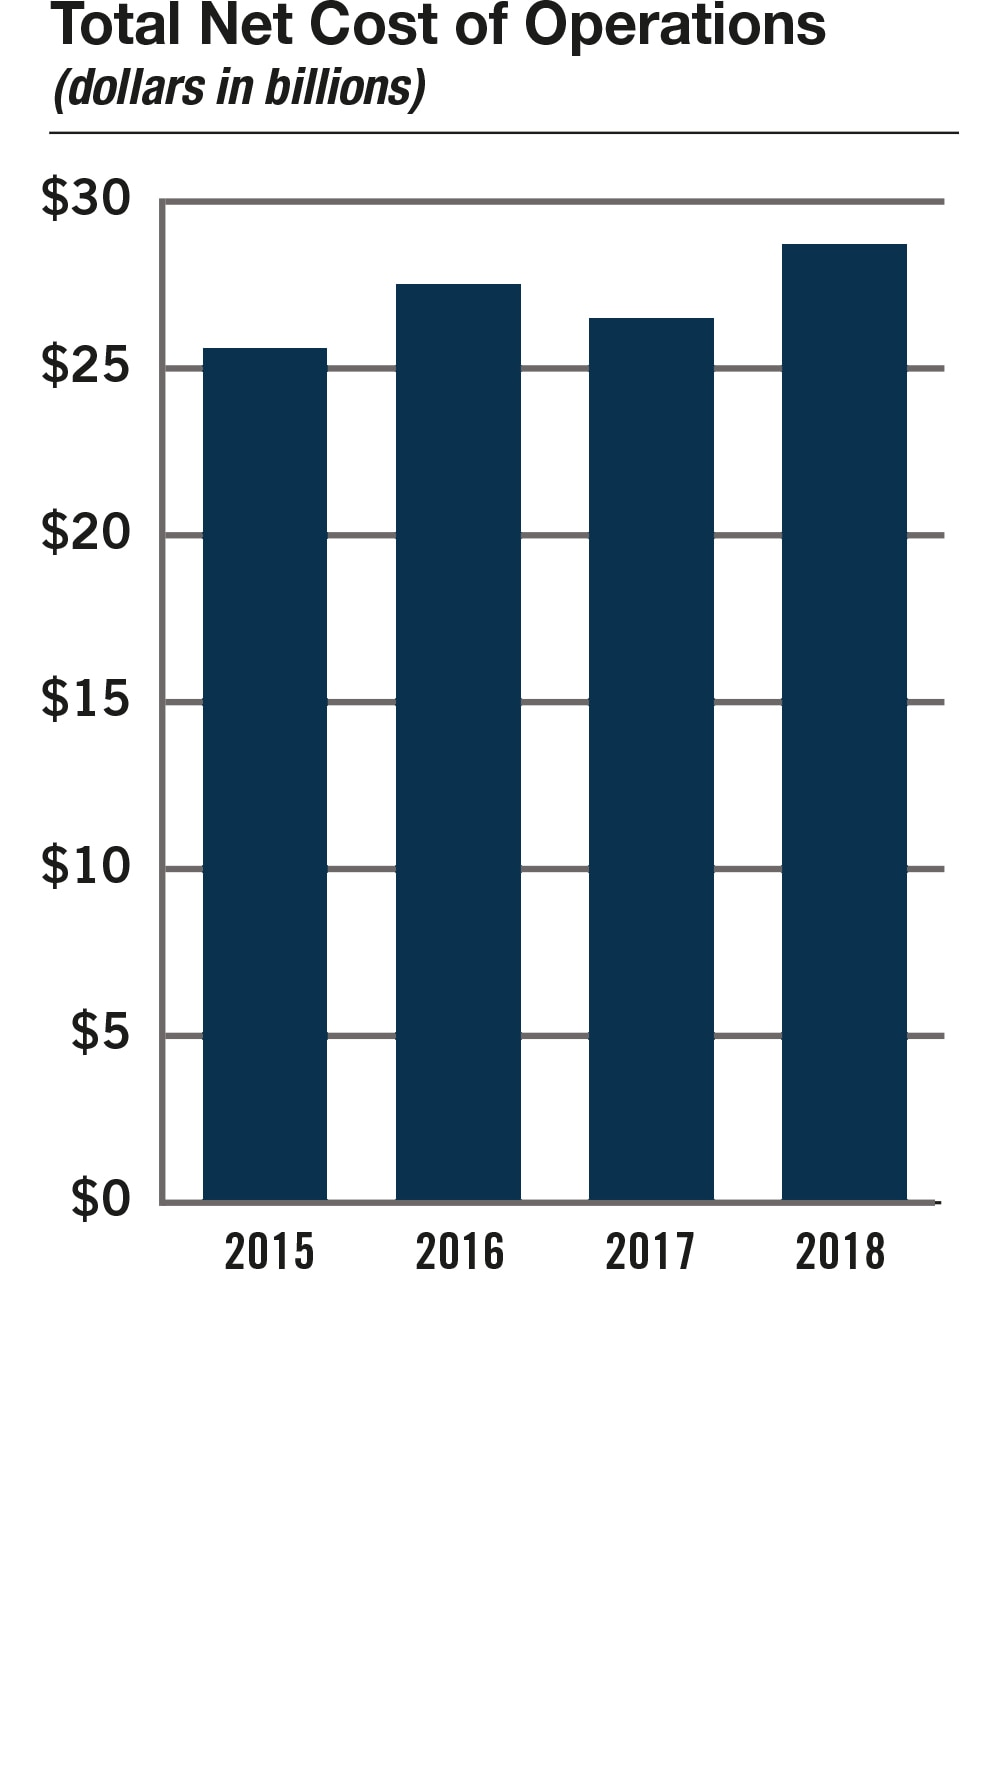 Bar chart summarizing the total net cost of operations for fiscal years 2015 to 2018. Values are as follows: FY 2015: $25.6 billion. FY 2016: $27.4 billion. FY 2017: $26.5 billion. FY 2018: $28.7 billion.